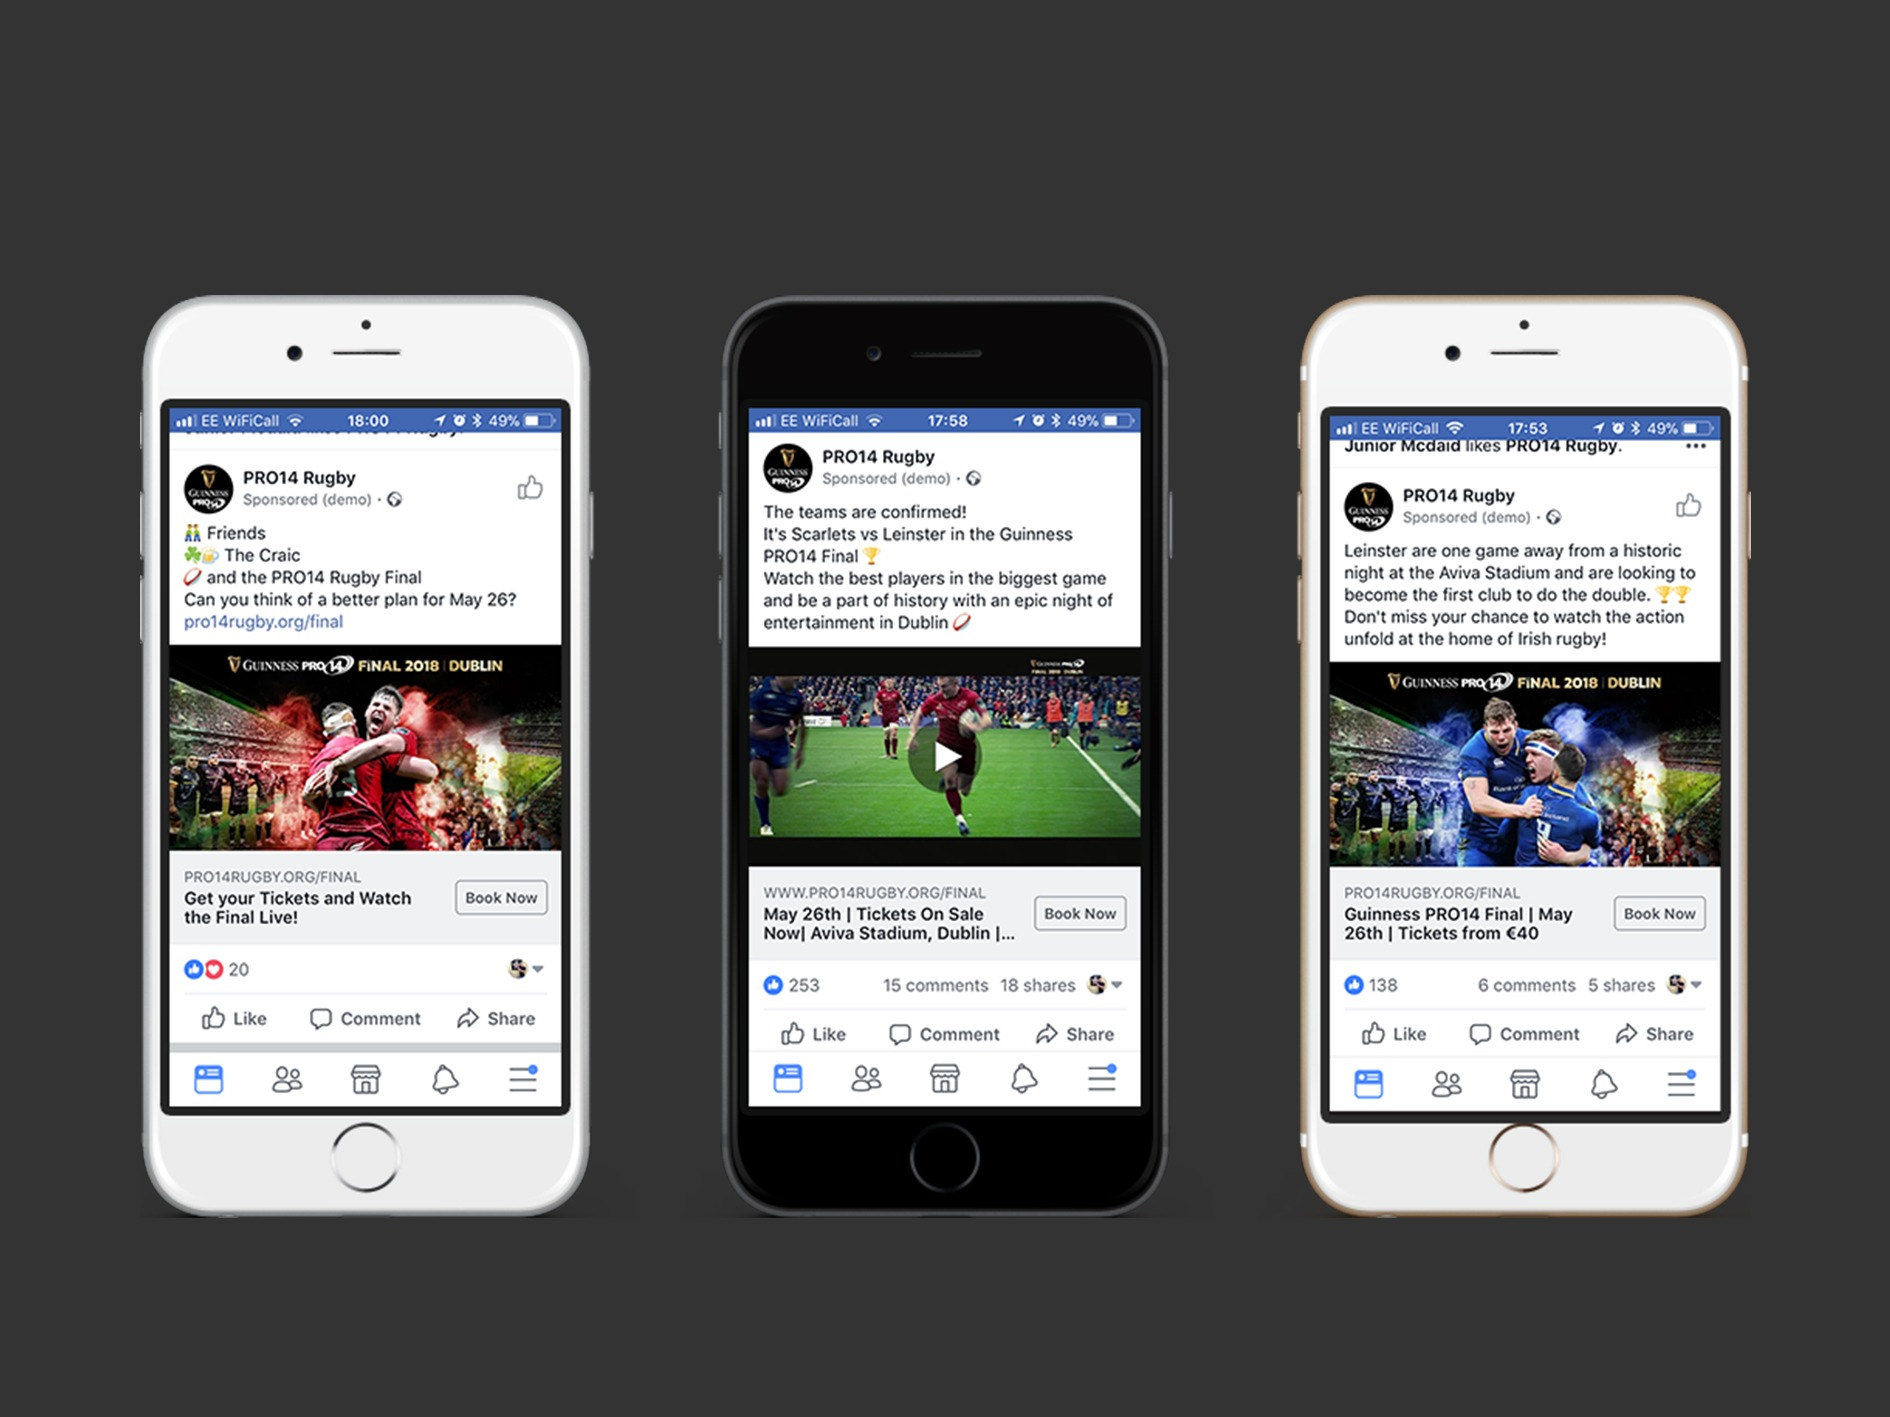 Guinness PRO14 Rugby Case Study mockup